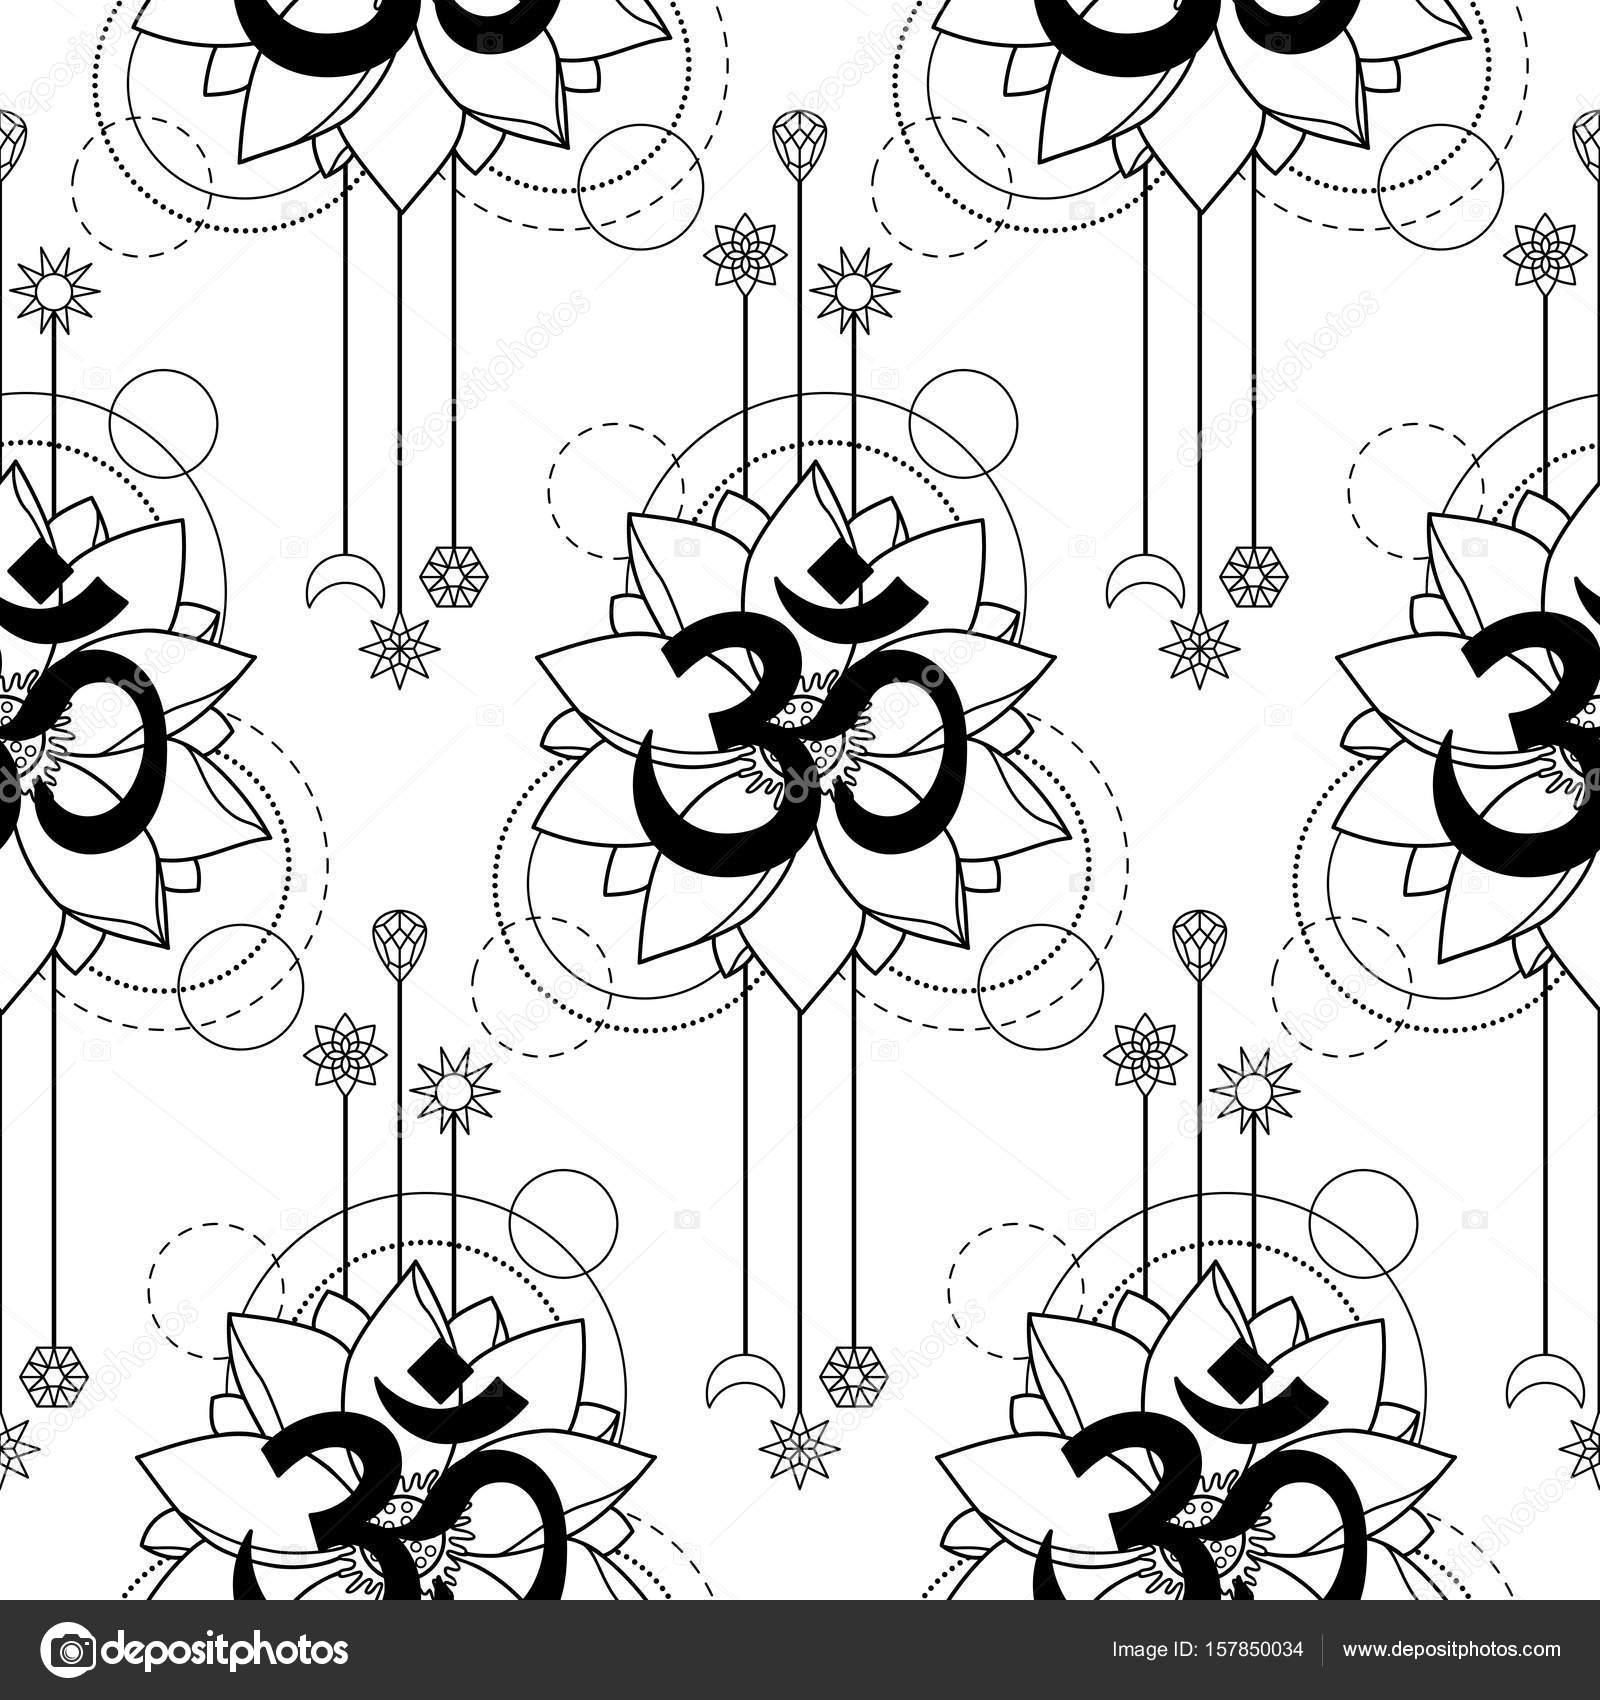 3006ff3cd Seamless pattern with mantra Om and lotus abstract composition on white  background. Modern tattoo, textile print, coloring page.